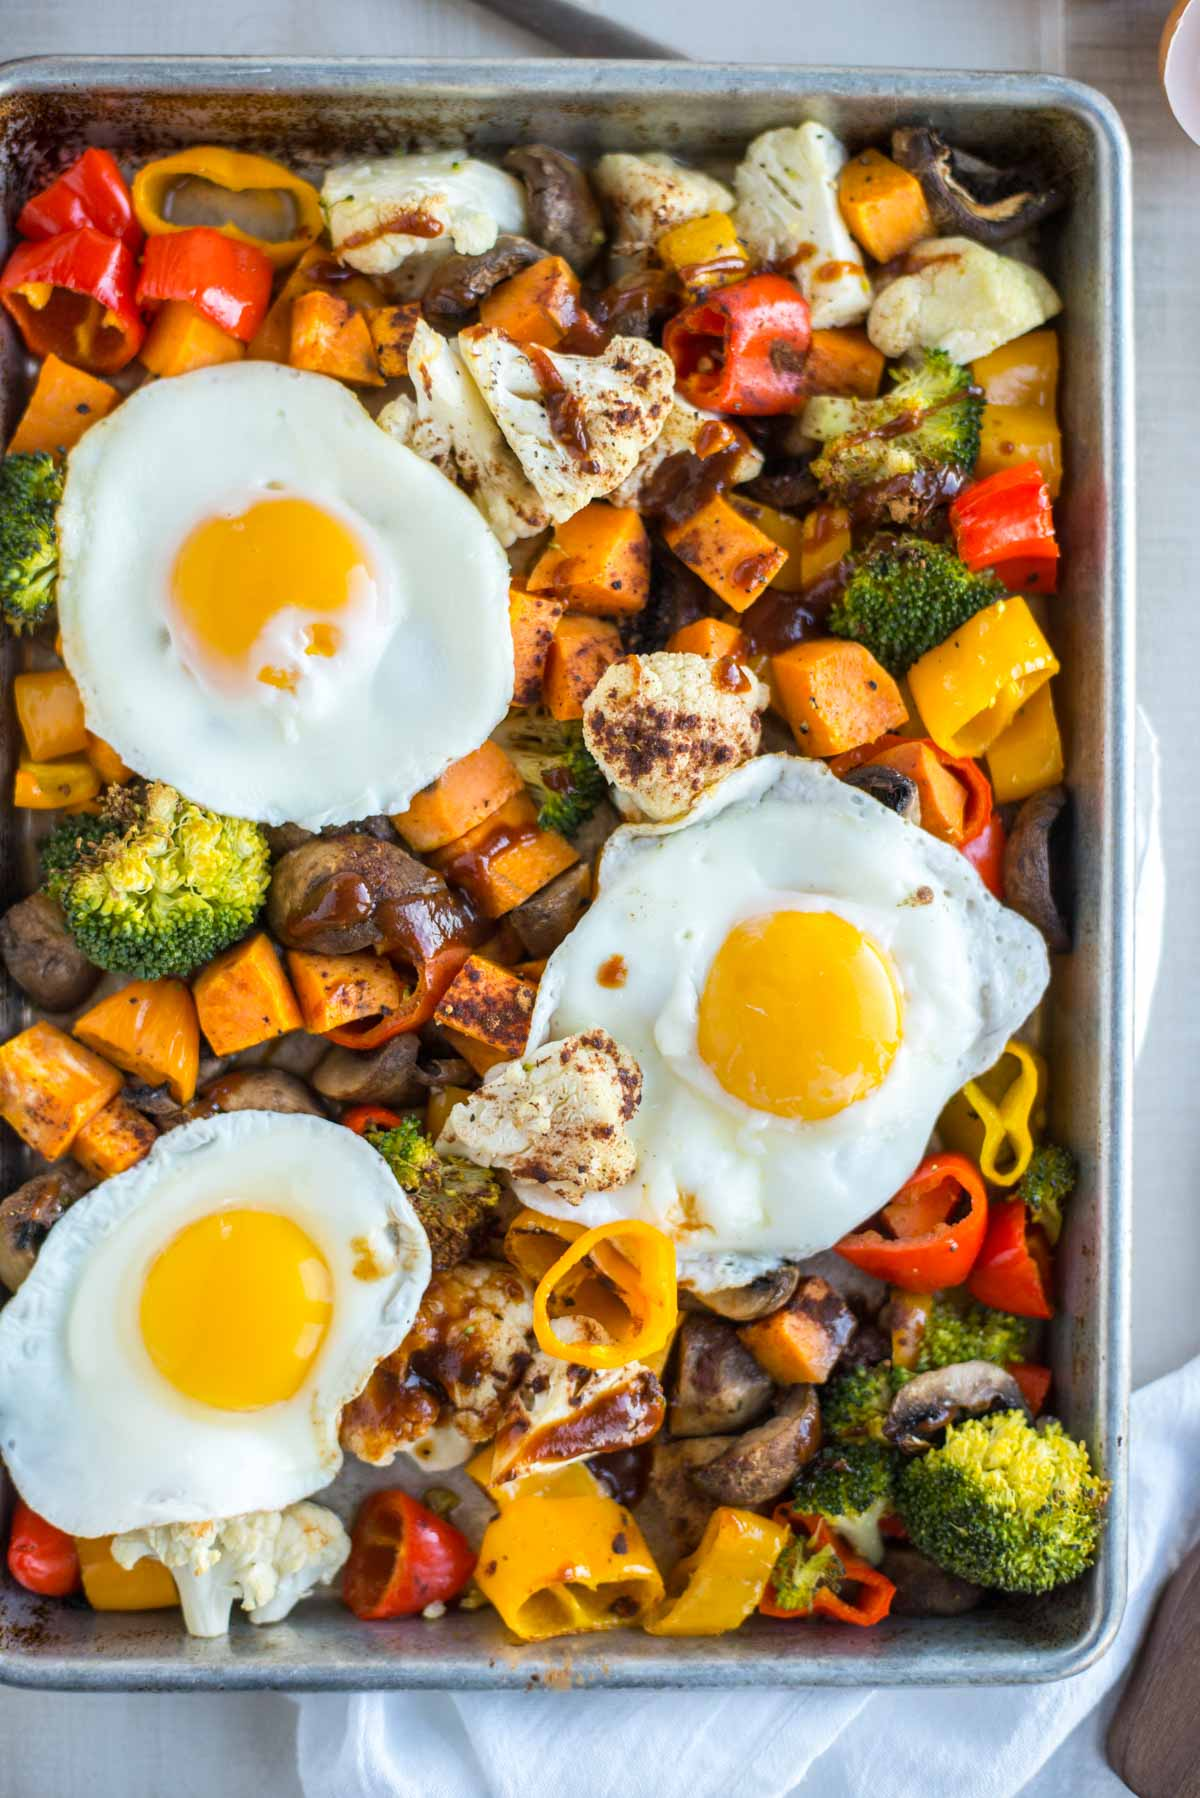 The question always becomes what should you eat for breakfast and even more is it important? Find out here.